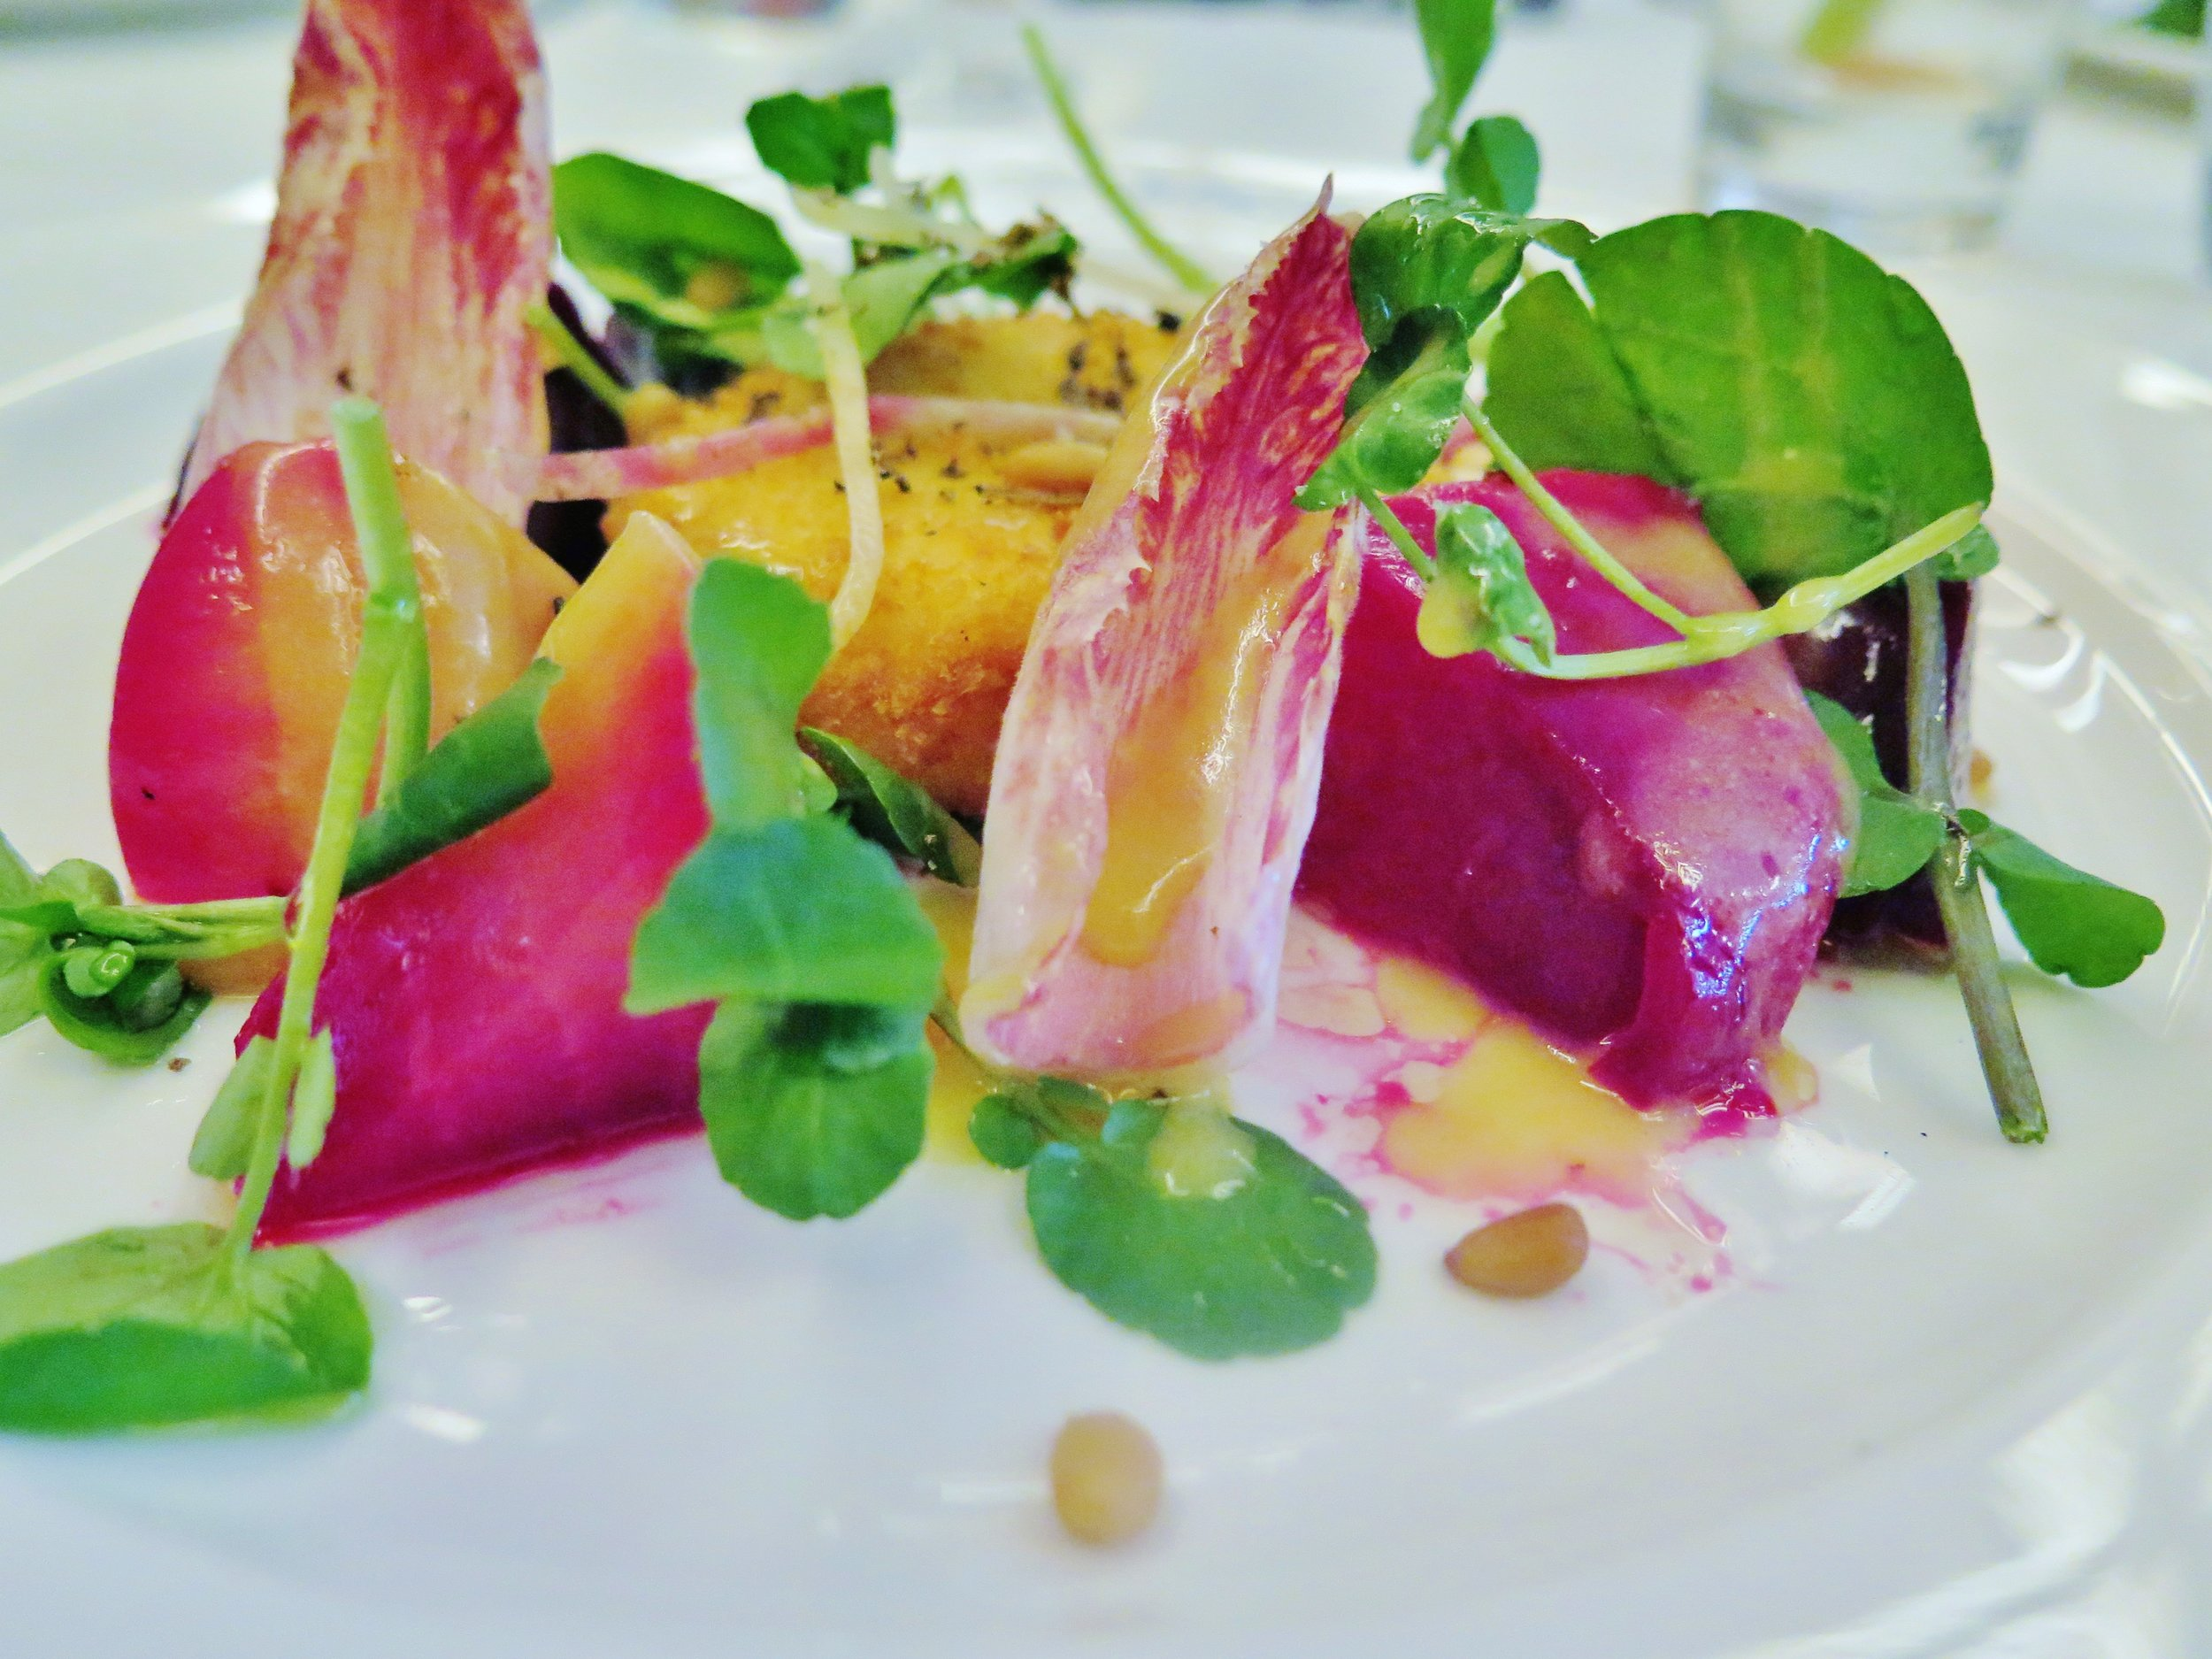 heritage beets, crispy goat's cheese with a truffle honey dressing, Le Caprice